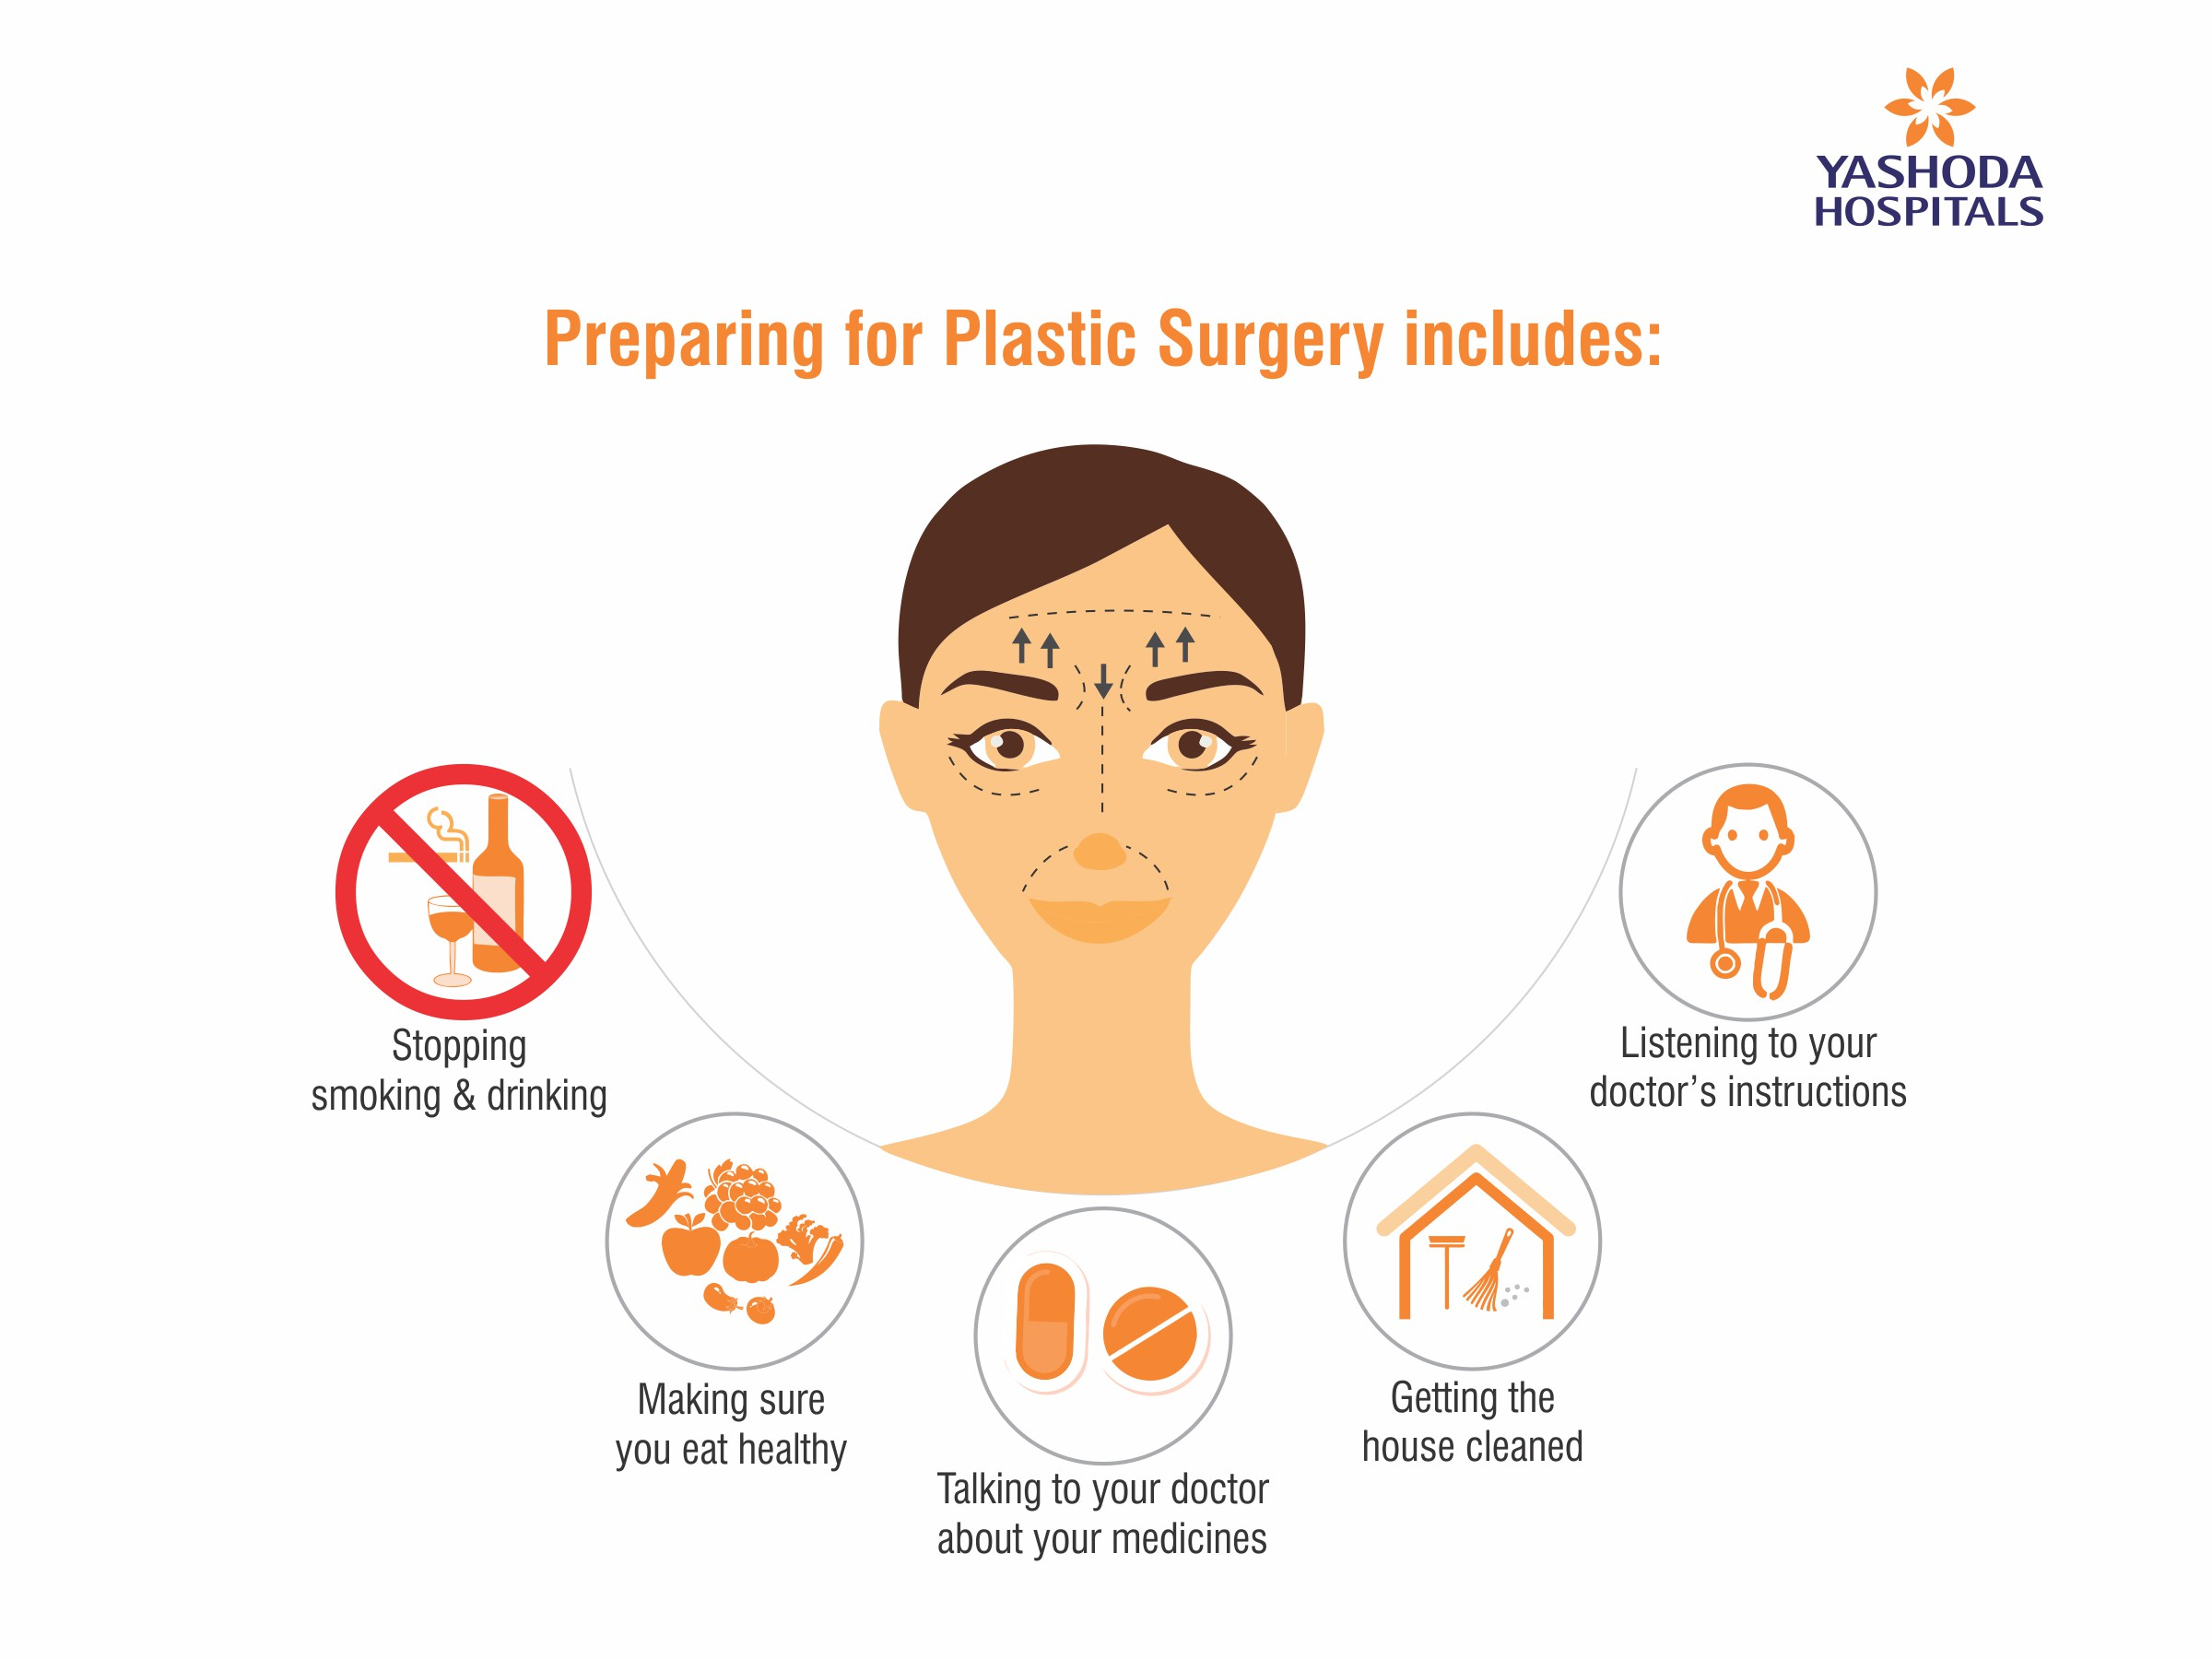 Plastic Surgery requires mental and physical preparation